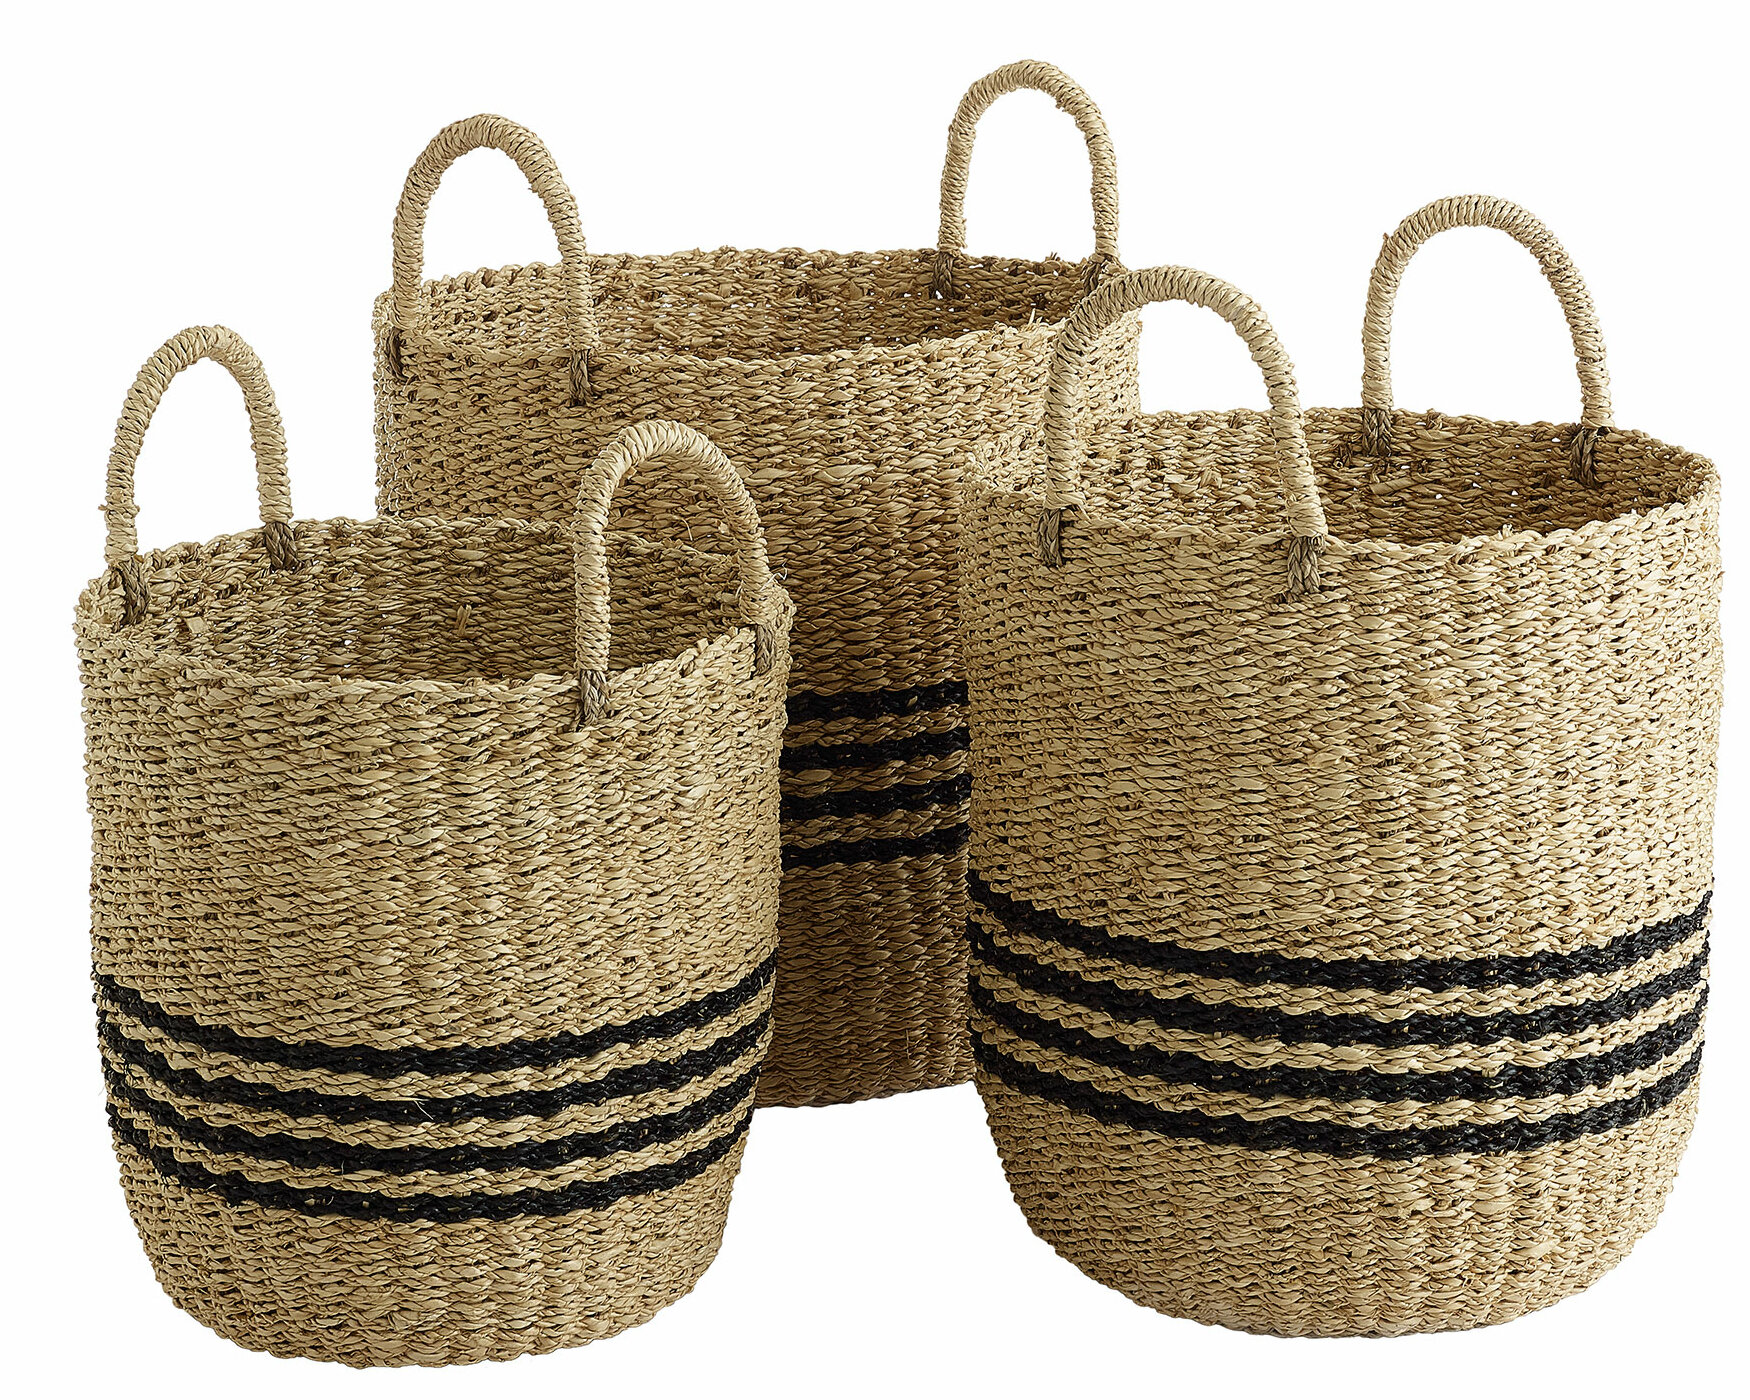 Basket Set 3 Piece Square Shaped Natural Raffia Woven In Brown With Handles Home Décor Home Garden